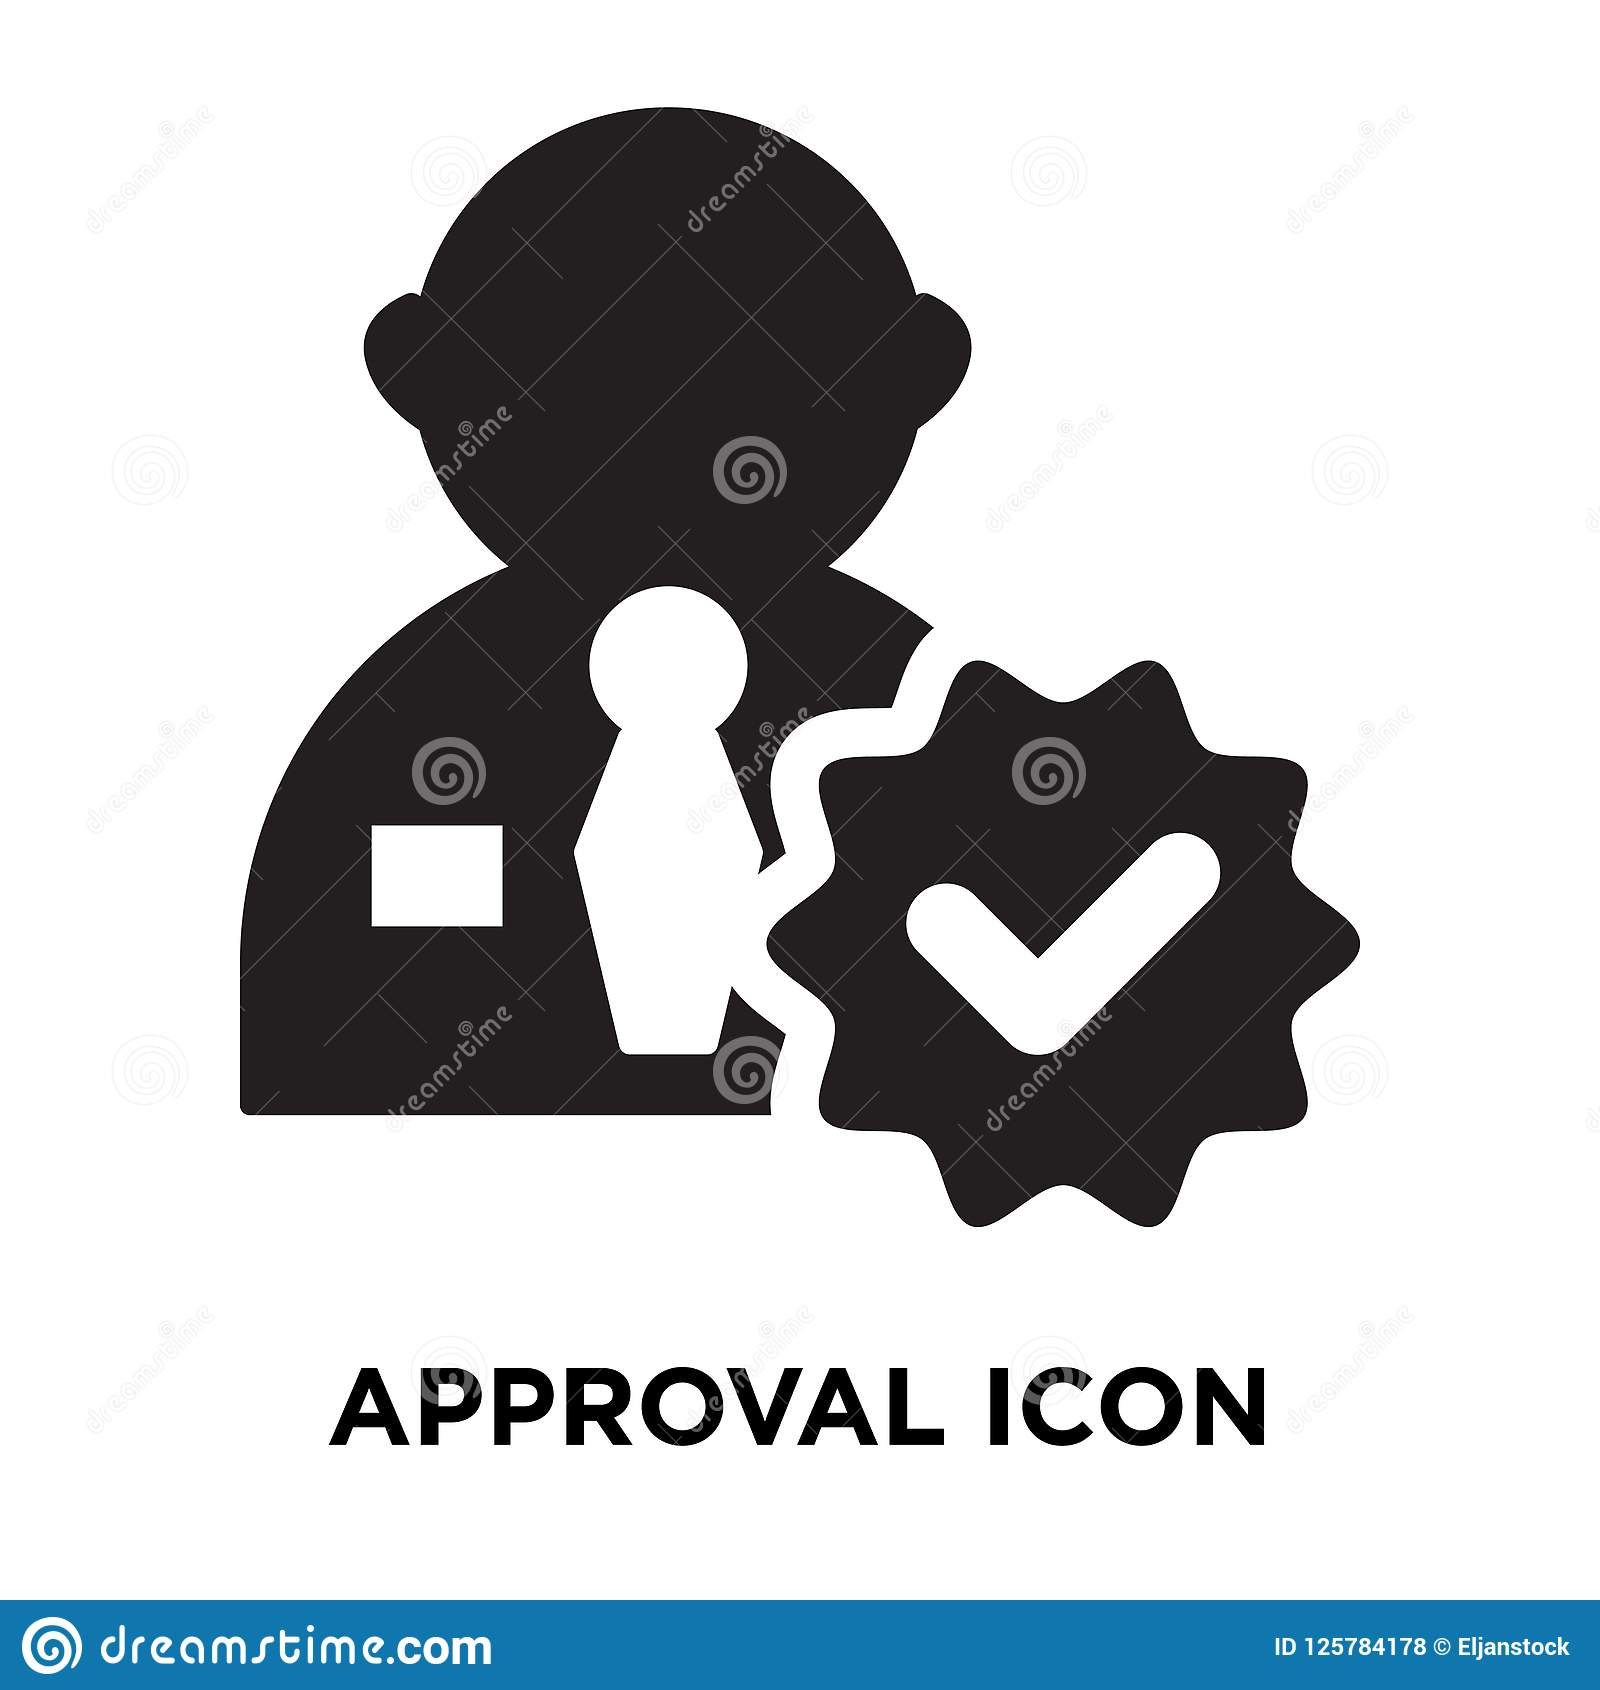 approval icon vector isolated on white background logo concept